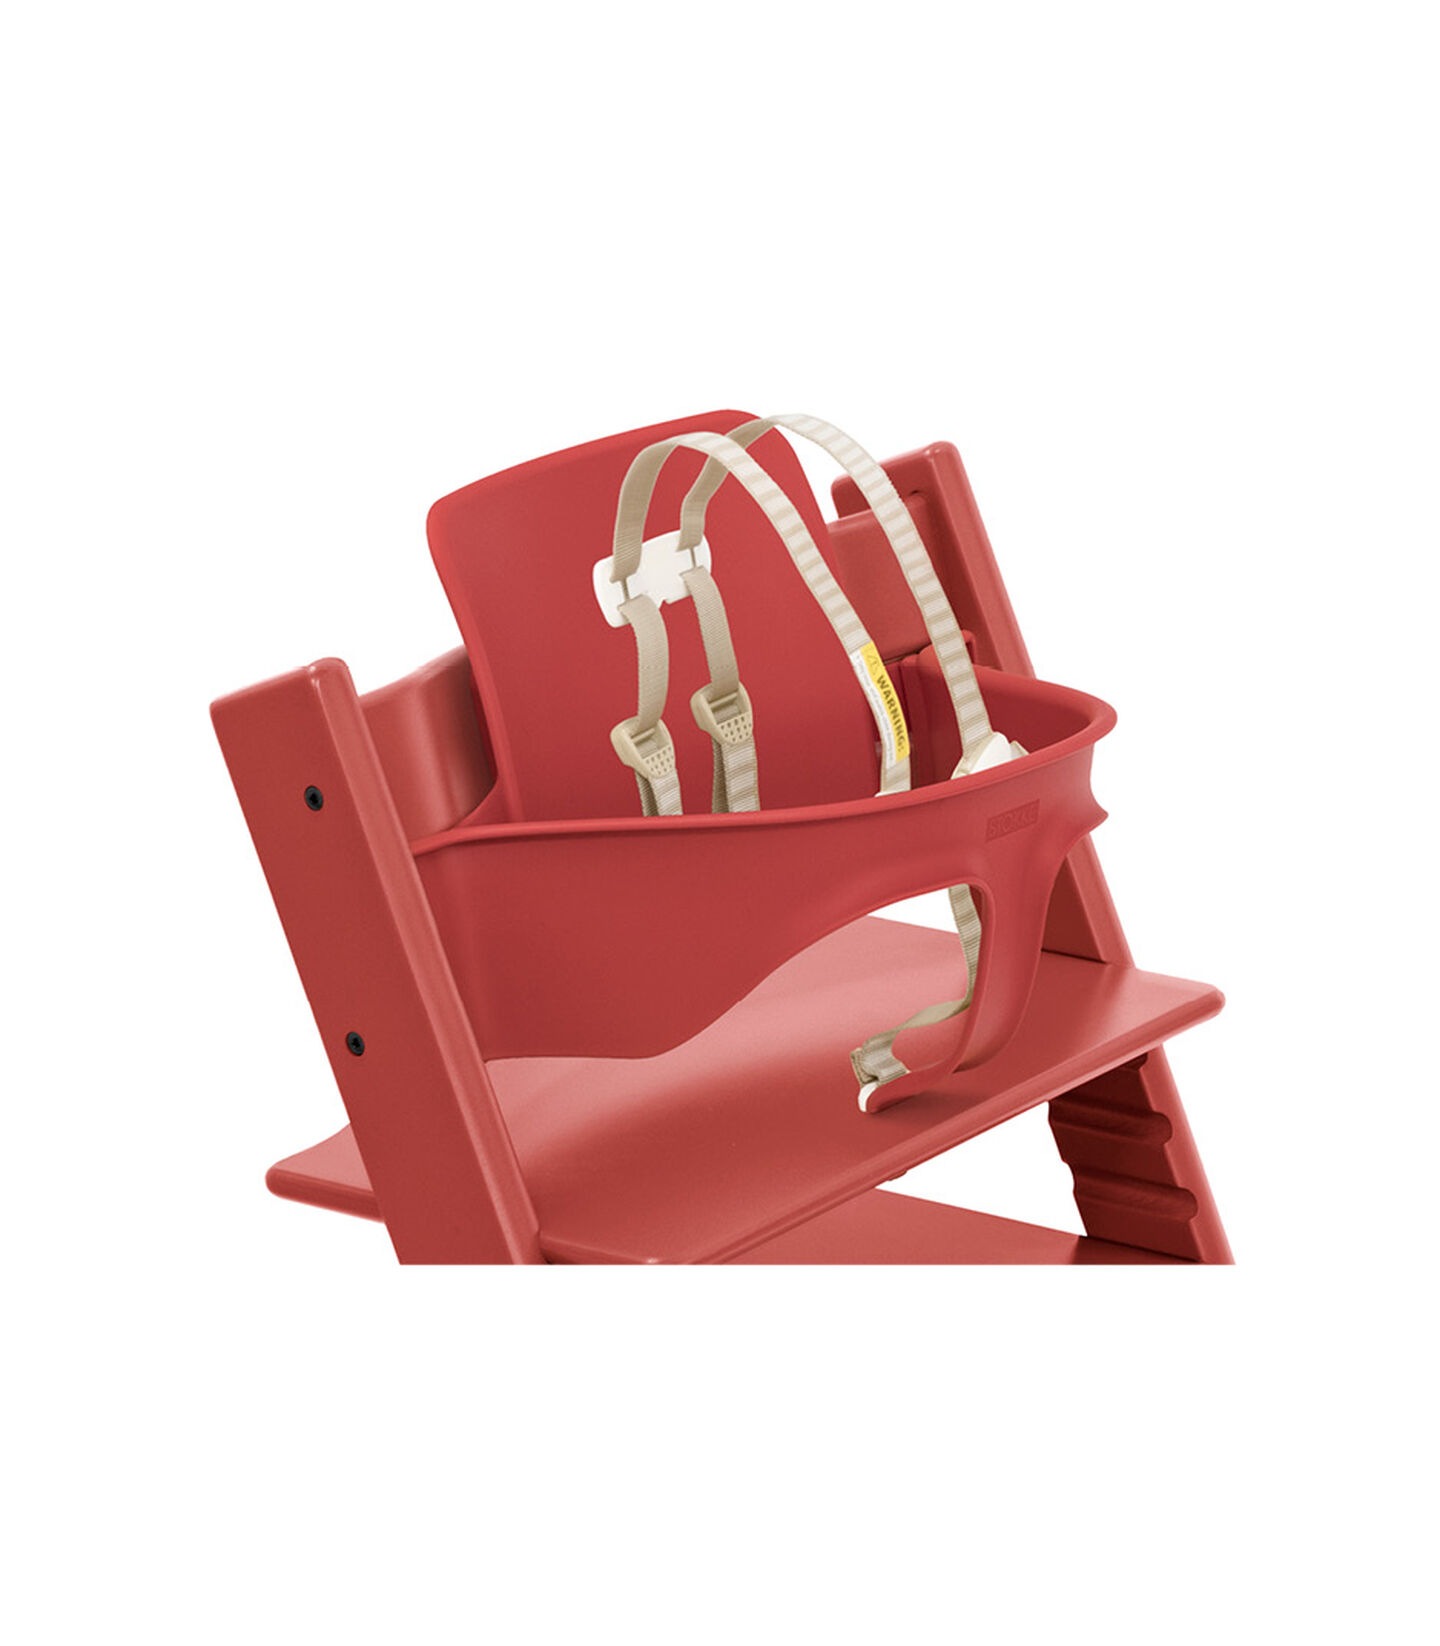 Tripp Trapp® Baby Set Warm Red, Warm Red, mainview view 1